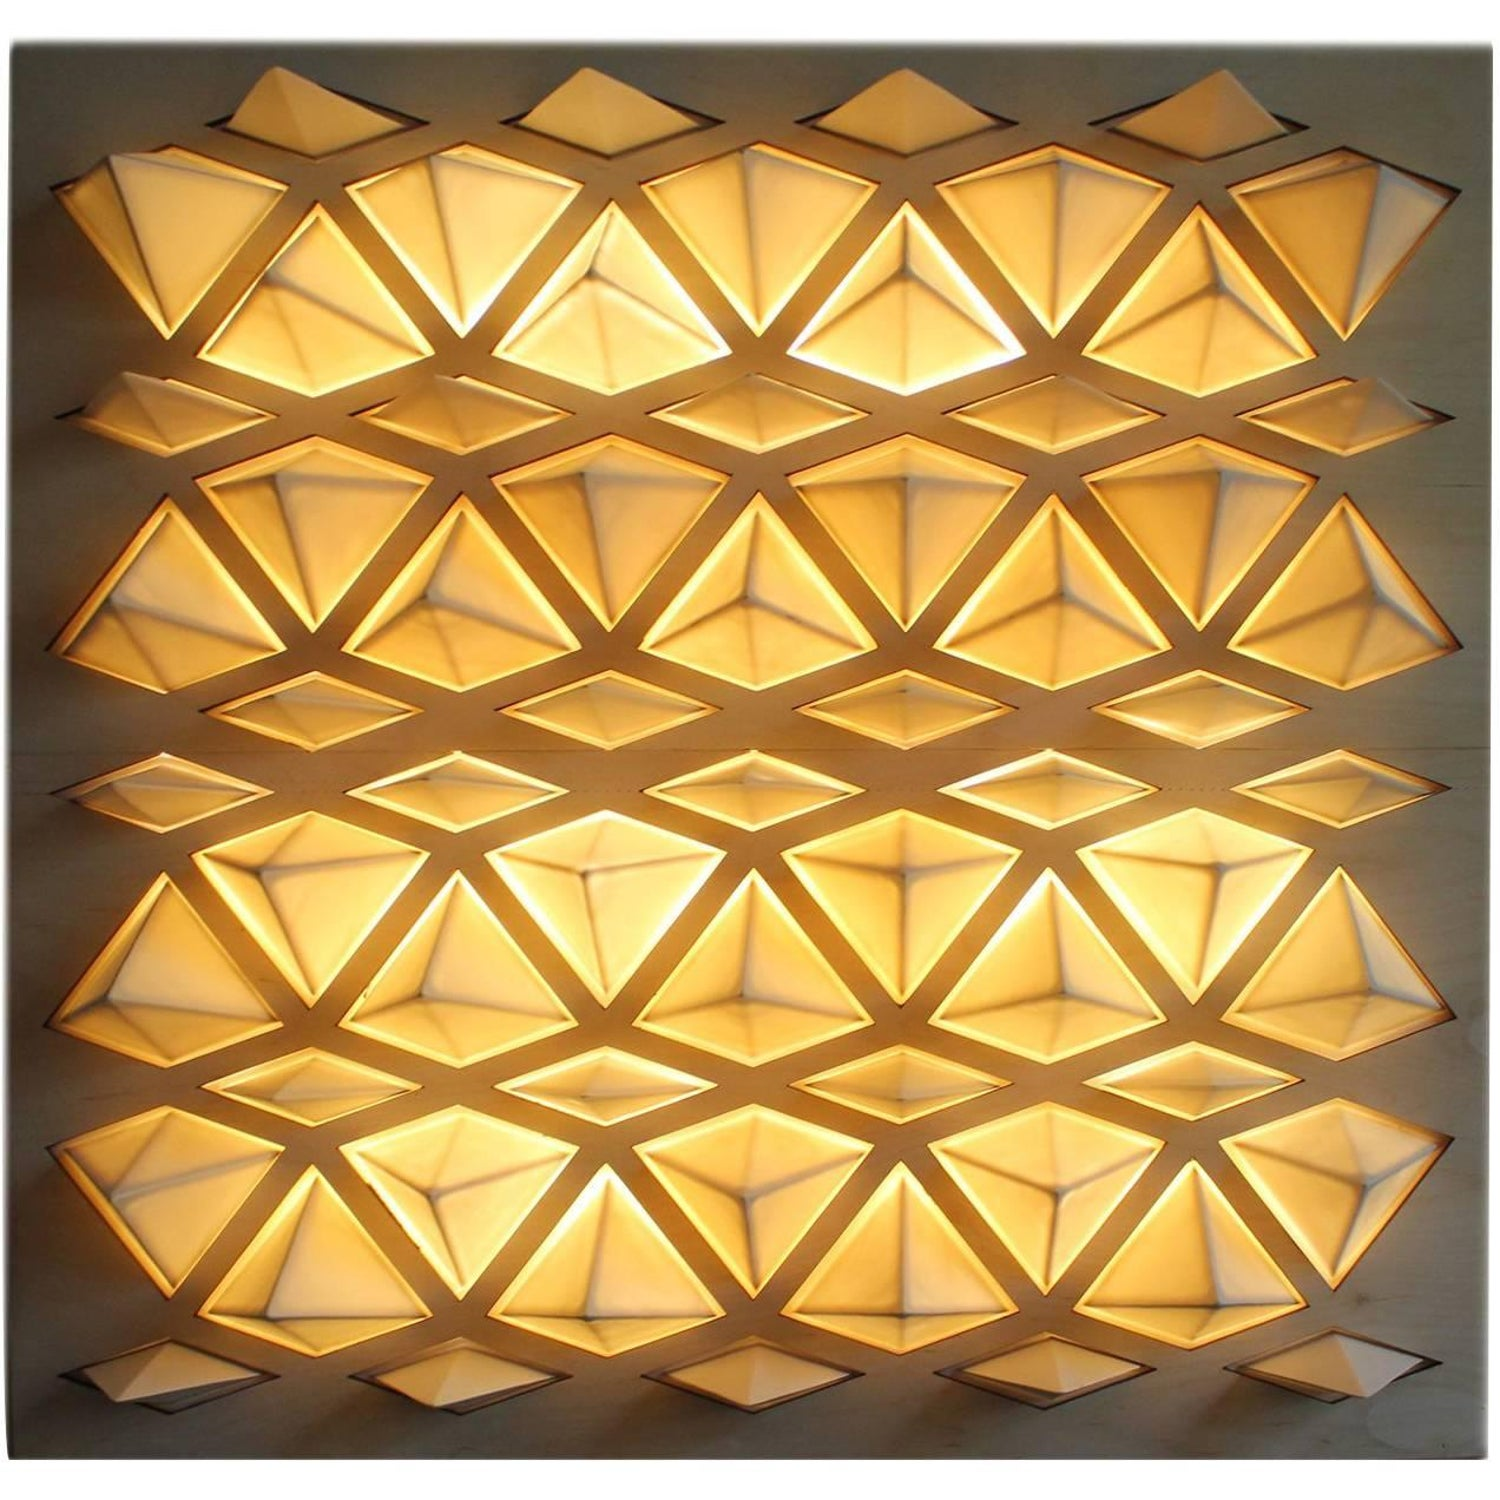 Wall Tile Installation Hanging Wall Lighting Contemporary Glazed ...